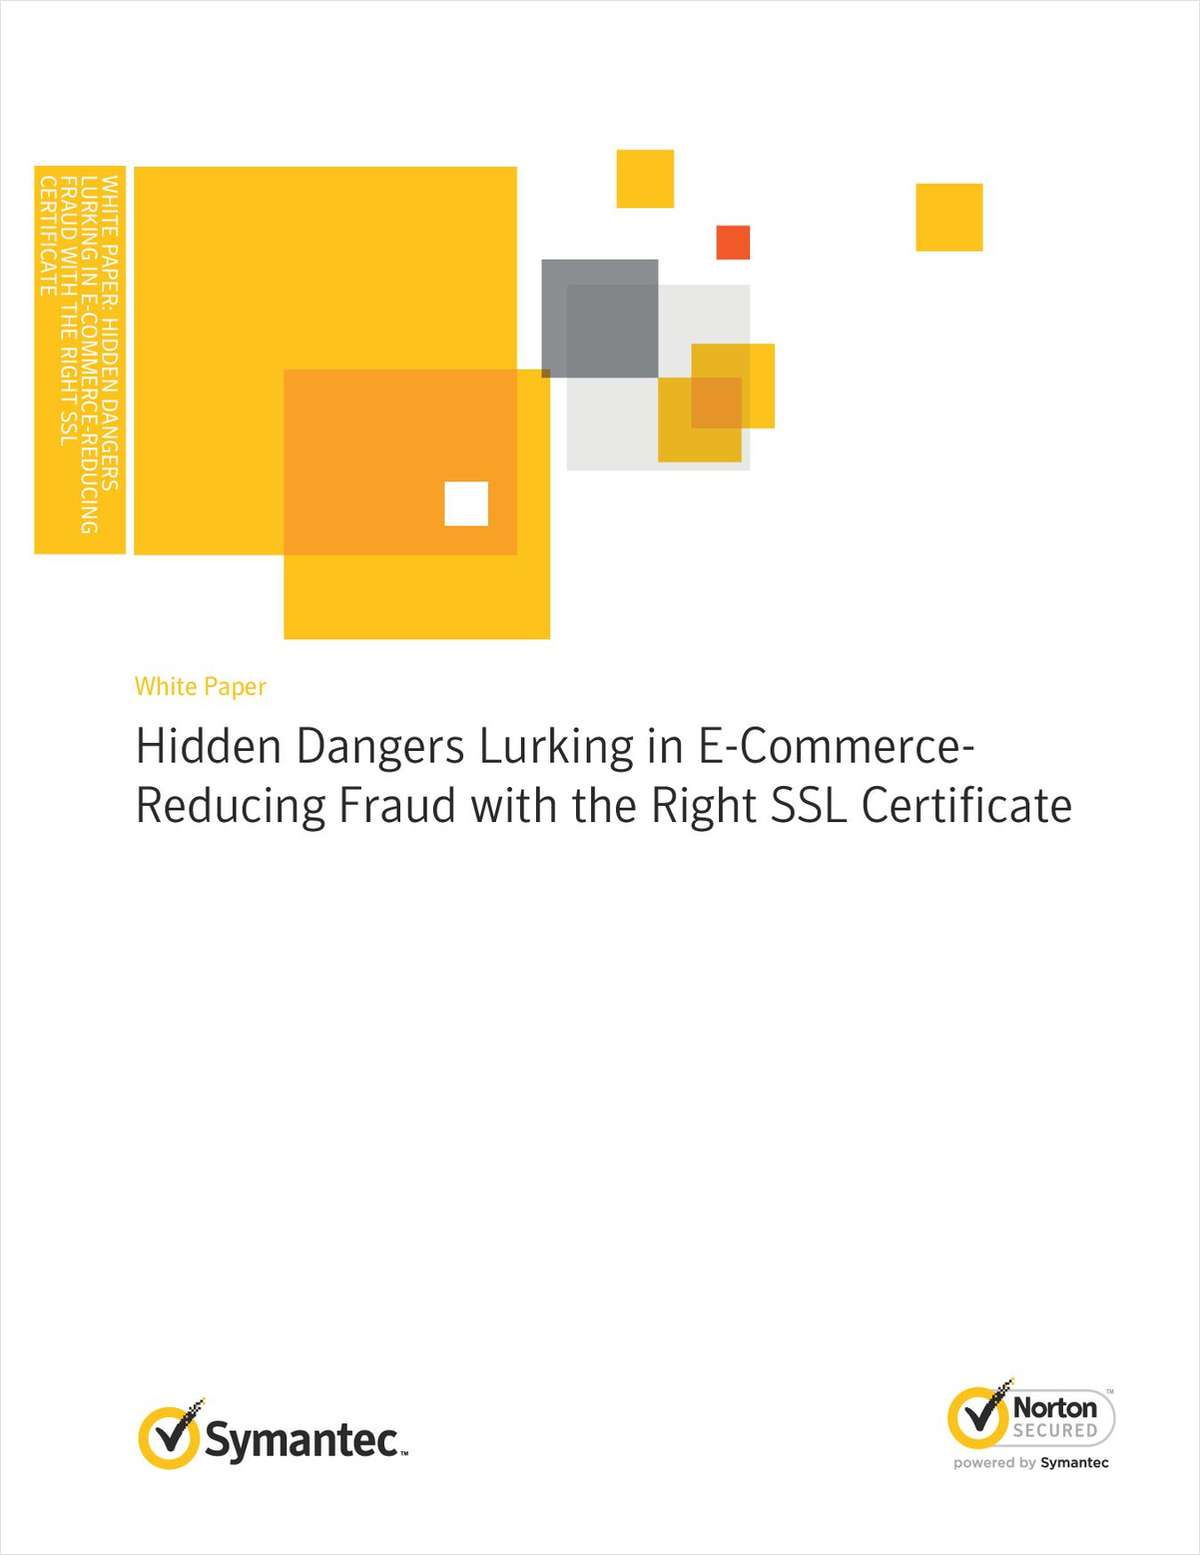 Hidden Dangers Lurking in E-Commerce - Reducing Fraud with the Right SSL Certificate